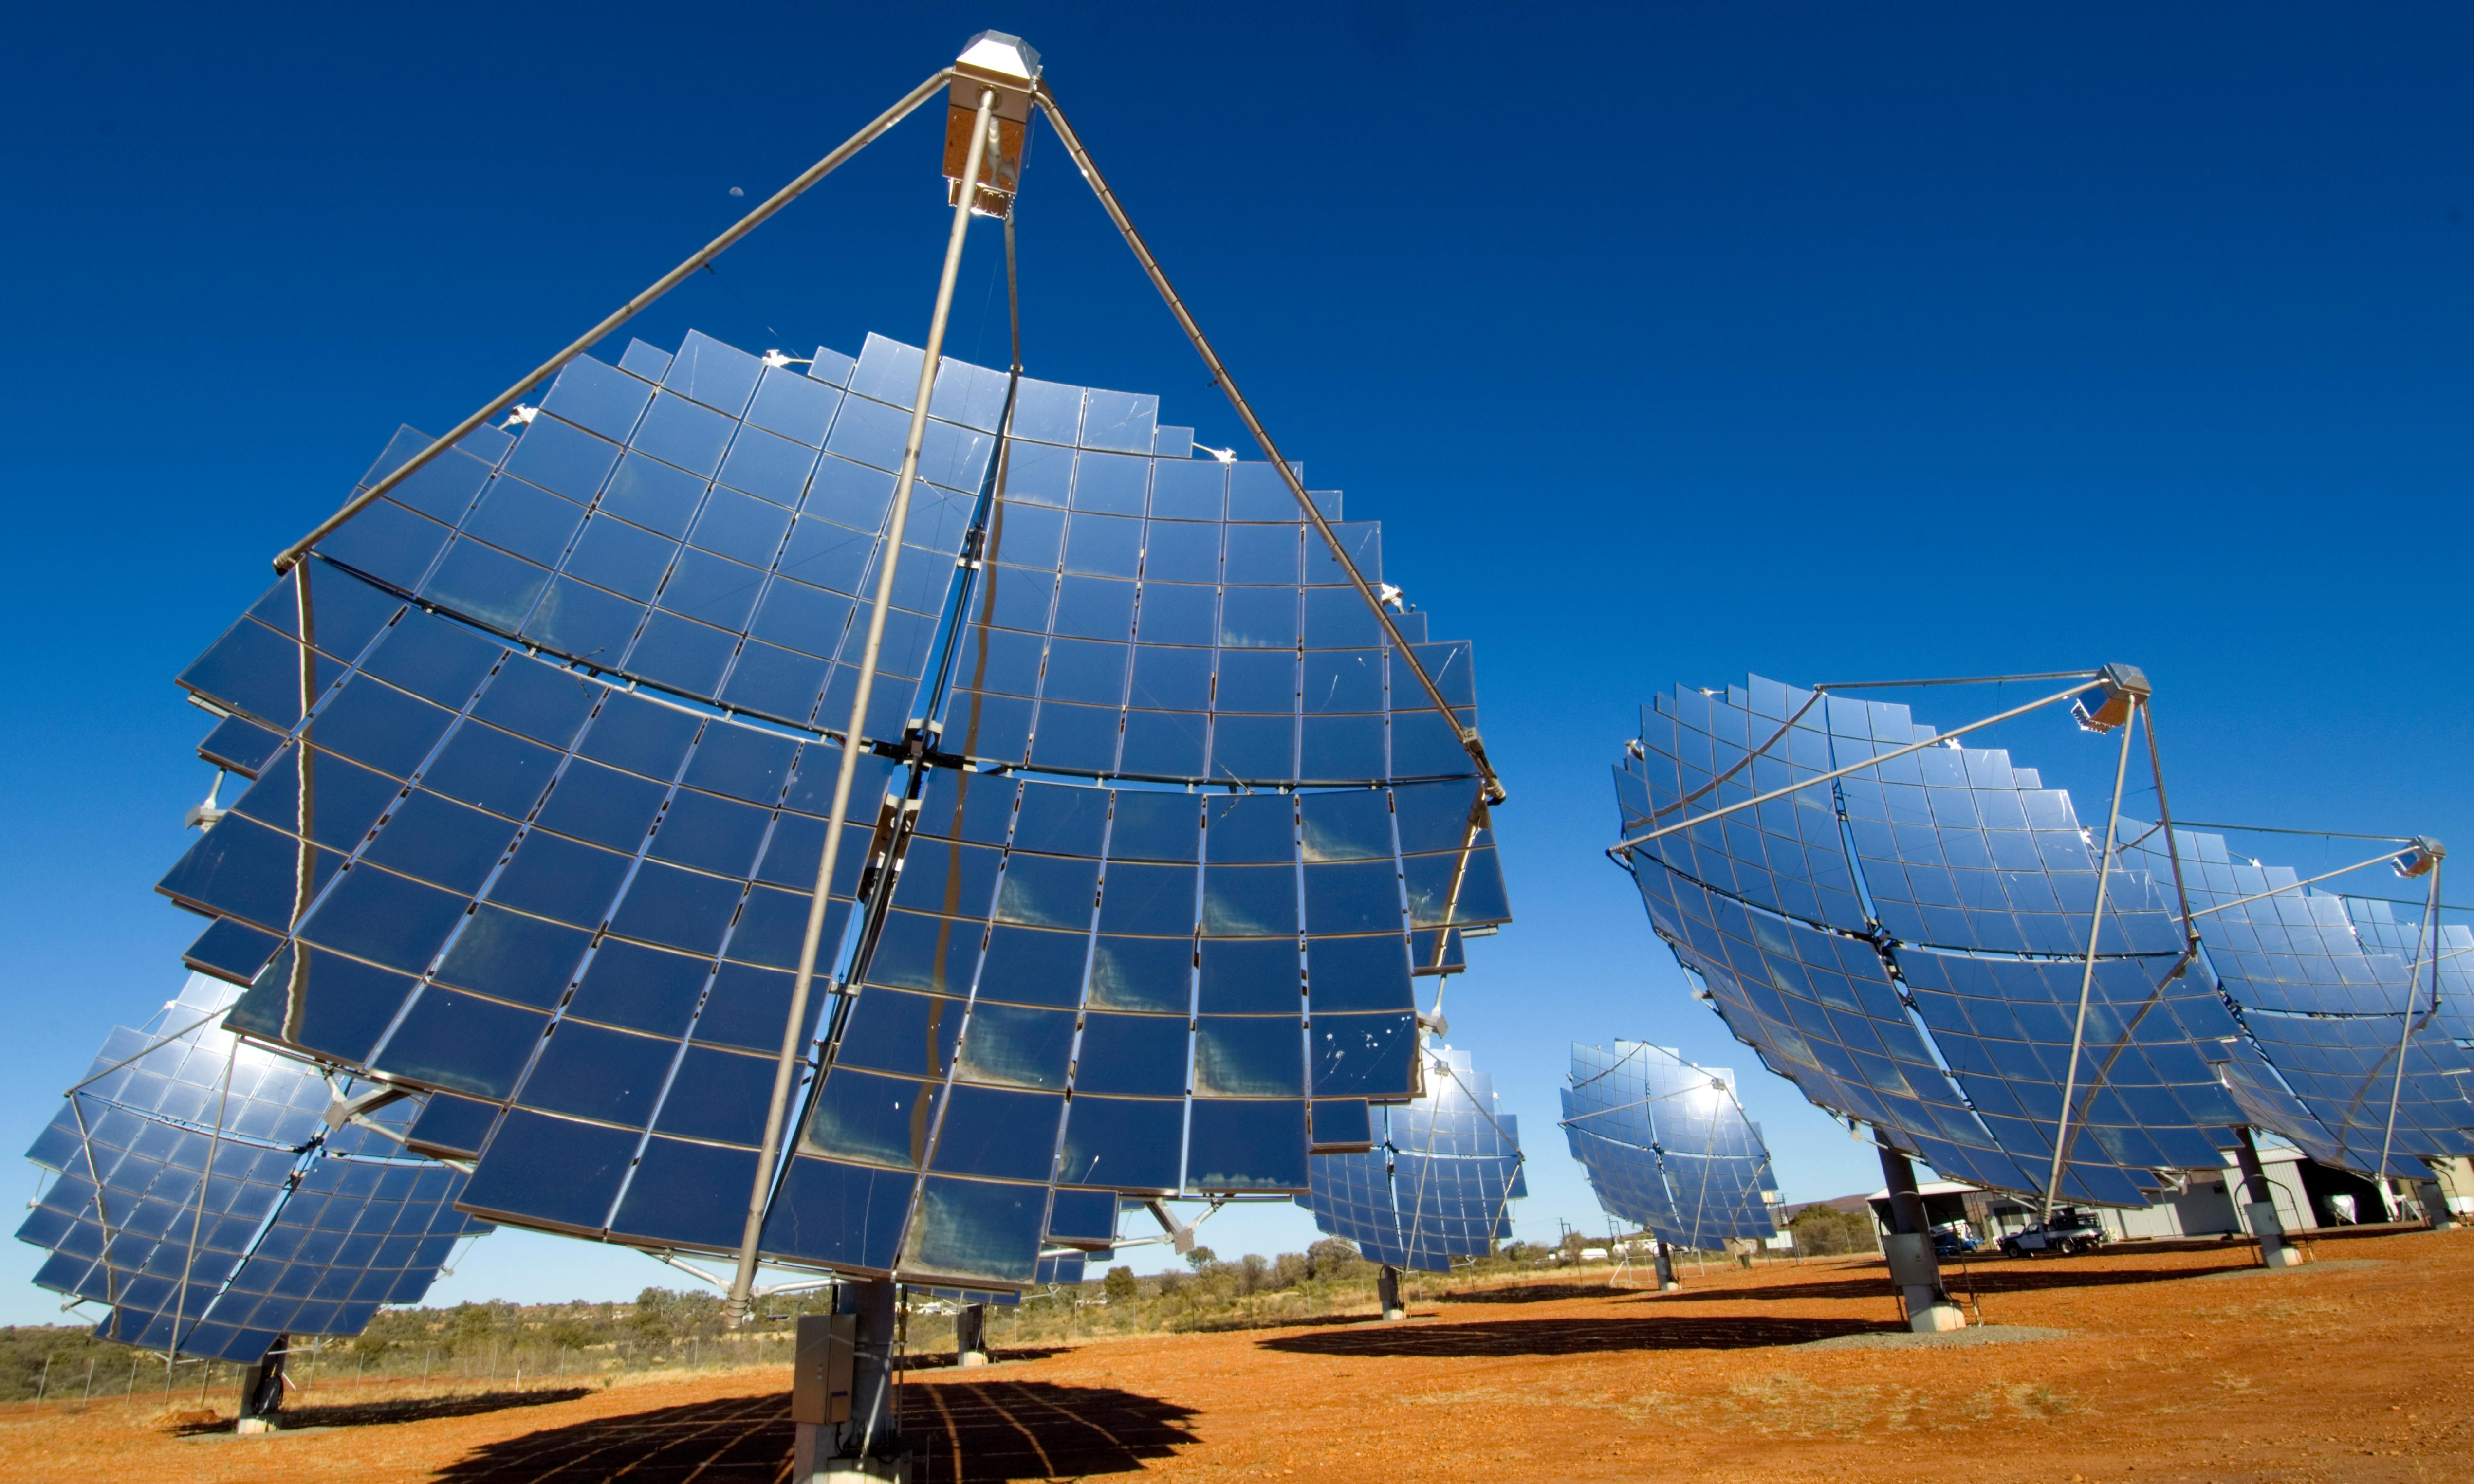 Northern Territory banks on solar to meet new 2050 zero emissions target